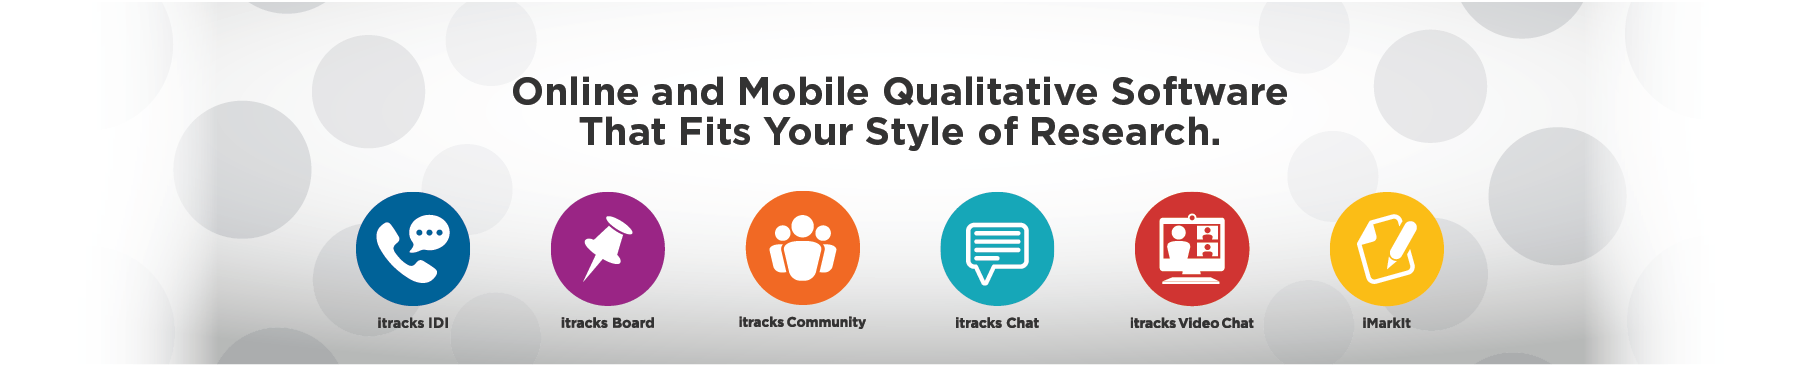 Online and Mobile Qualitative Research Software Solutions